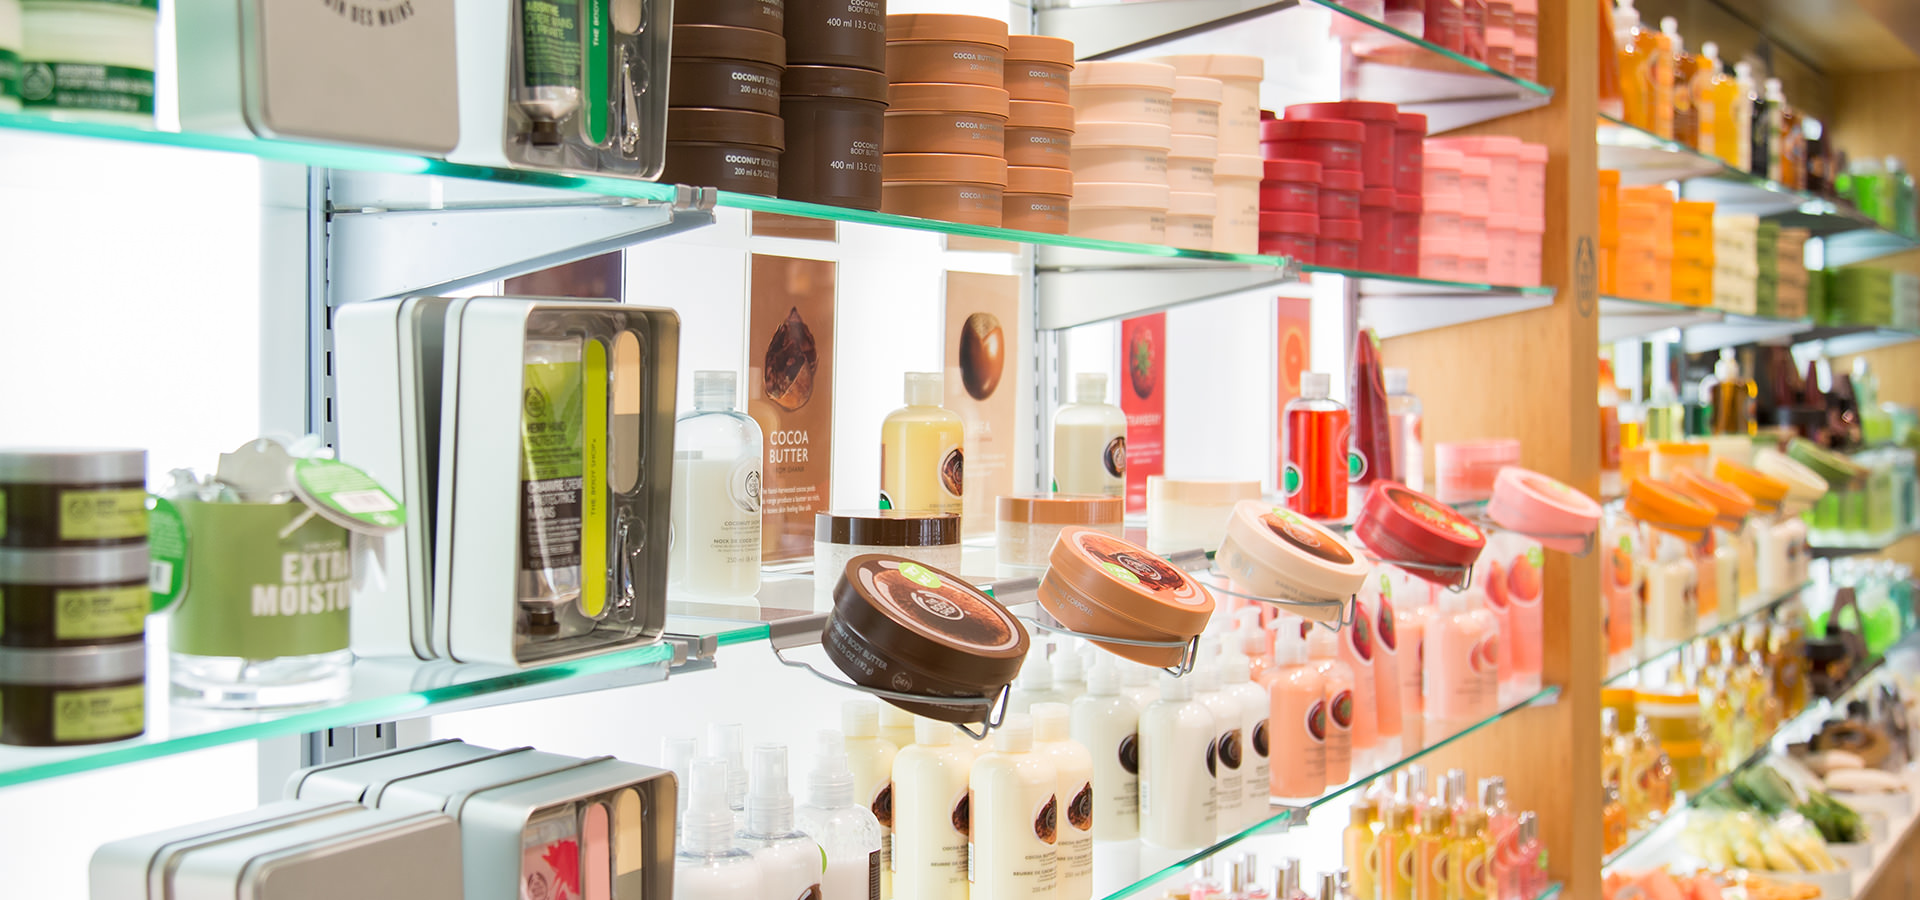 The Body Shop Near Me in Dulles, VA | Dulles Town Center